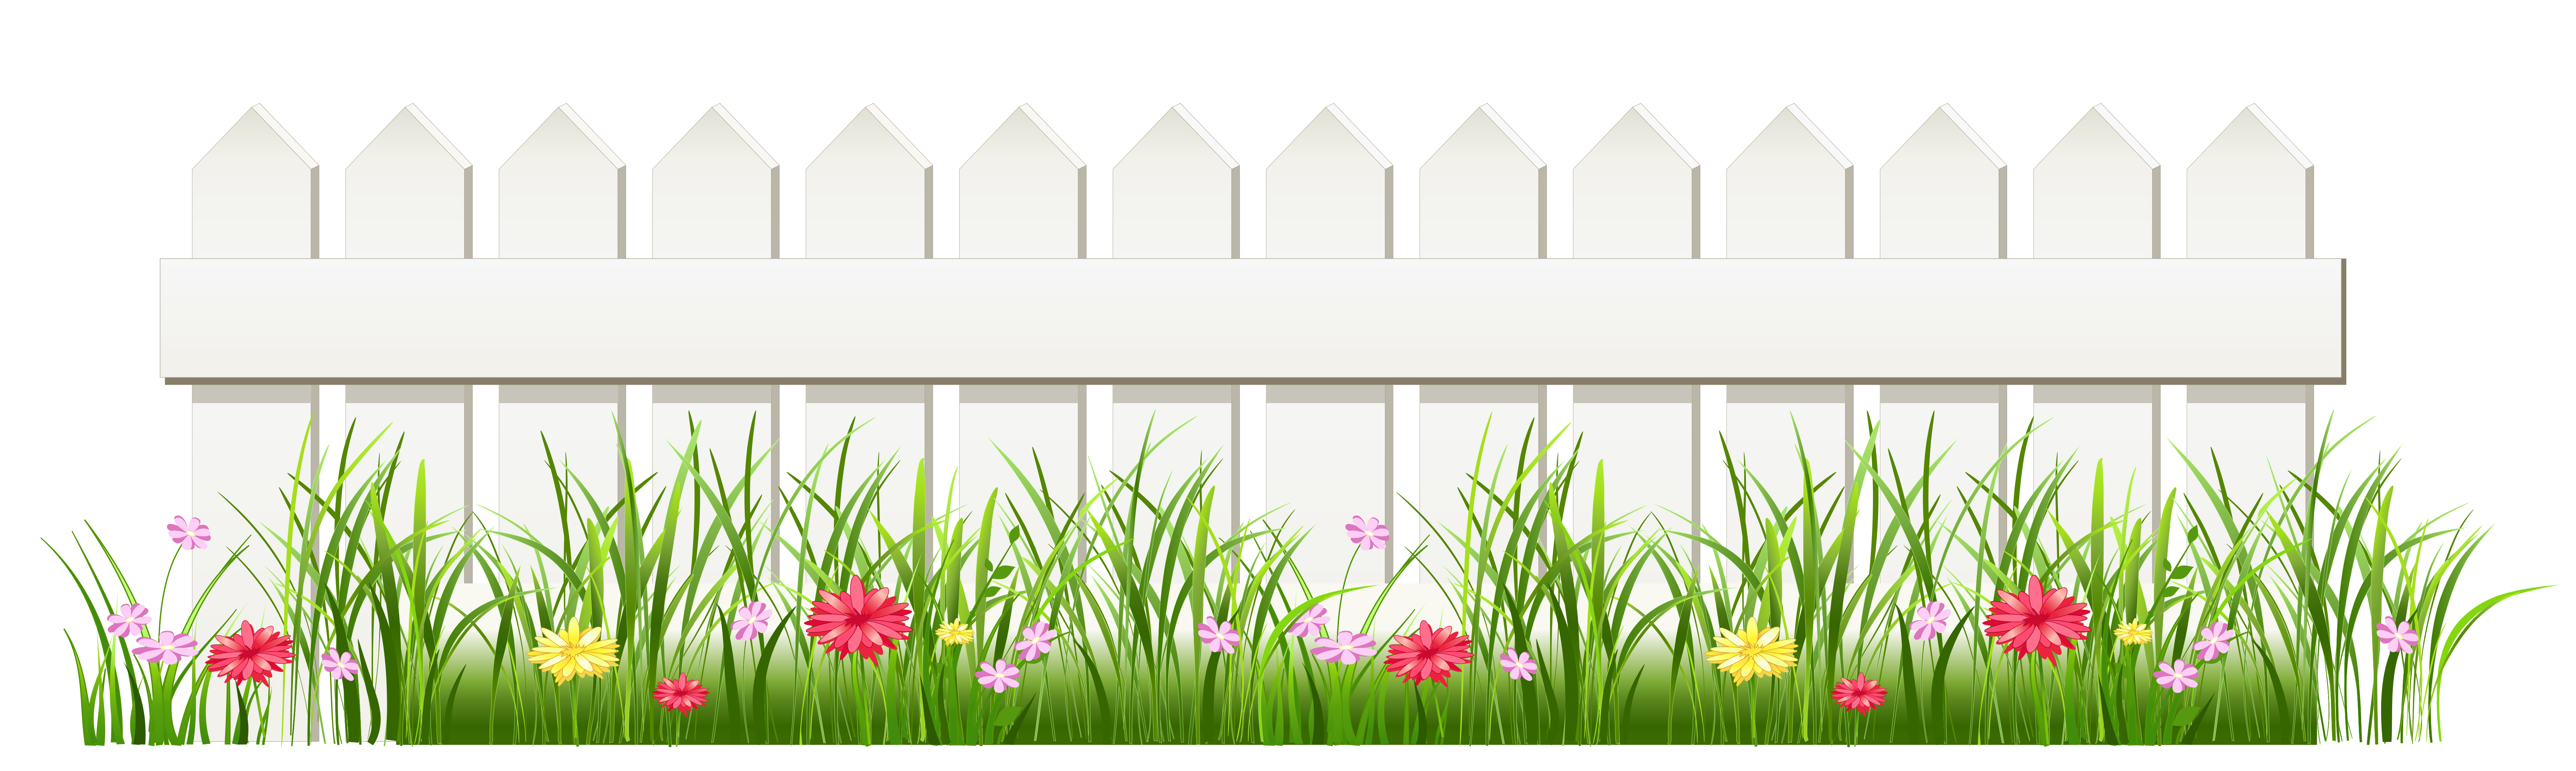 Grass greener on other side of fence clipart svg Free Fence Cliparts, Download Free Clip Art, Free Clip Art on ... svg